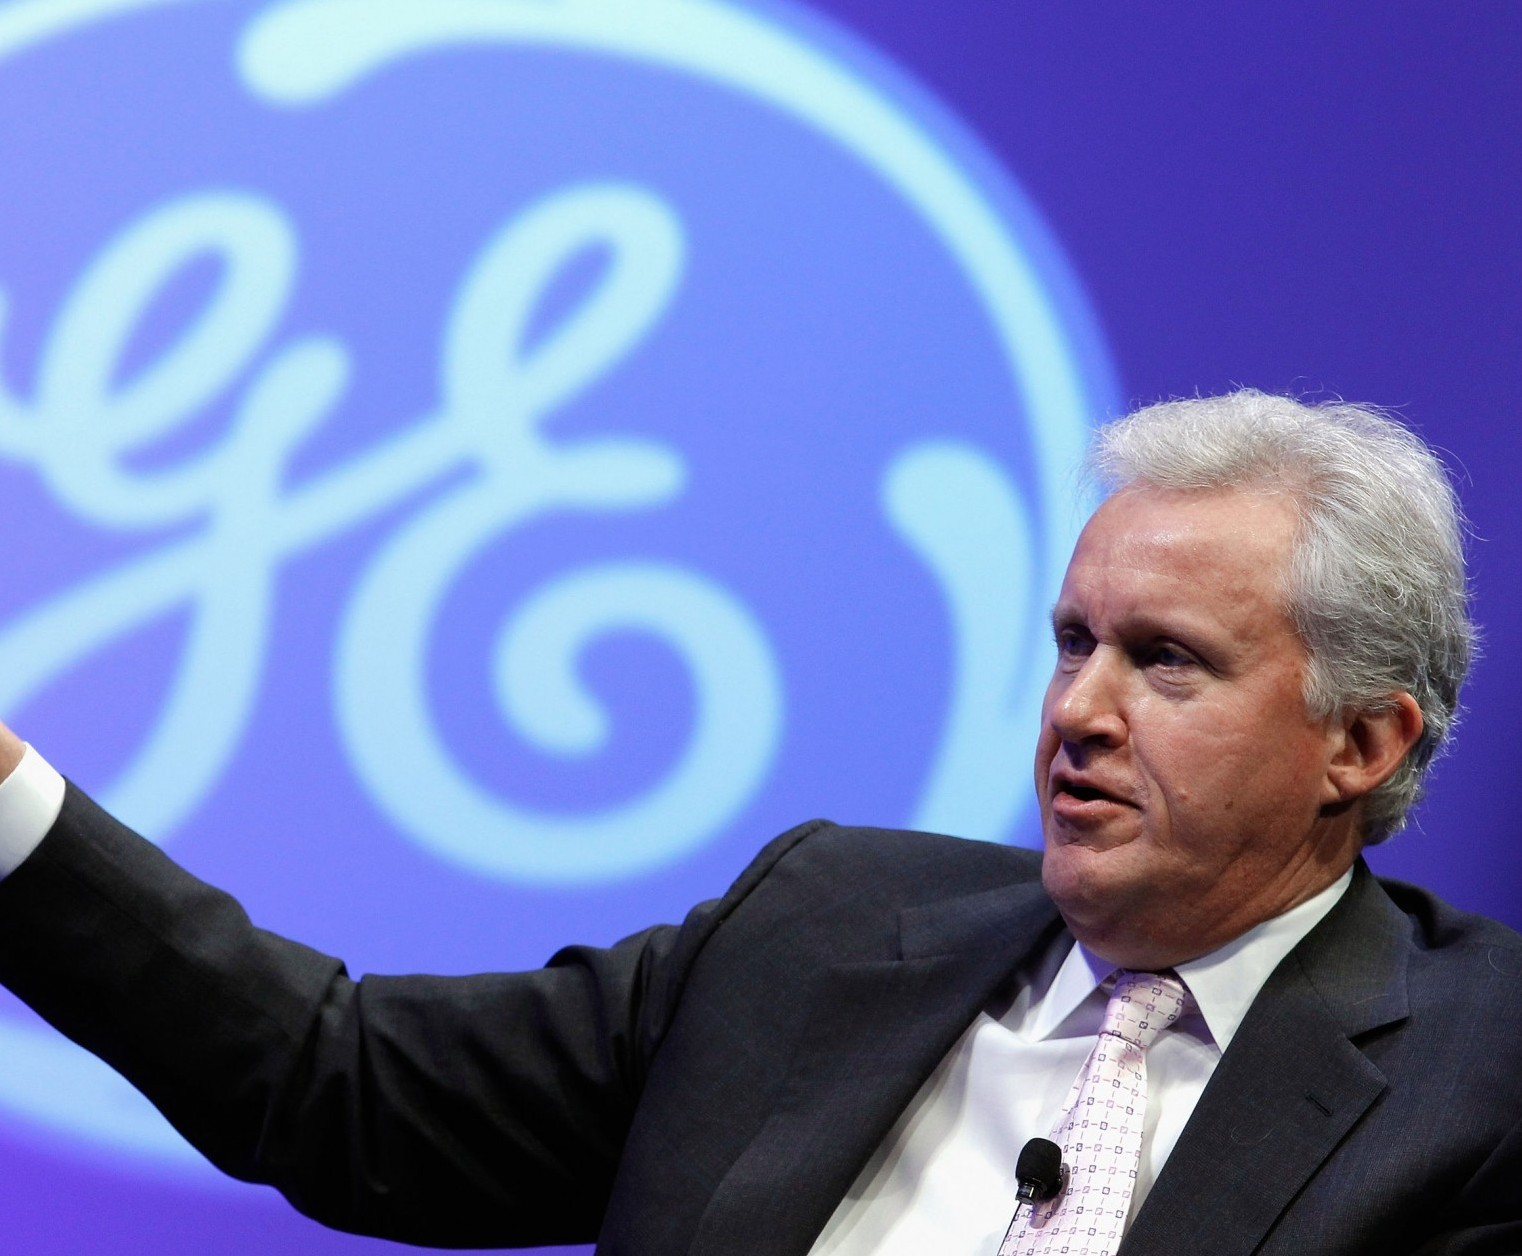 GE's Jeff Immelt to step down